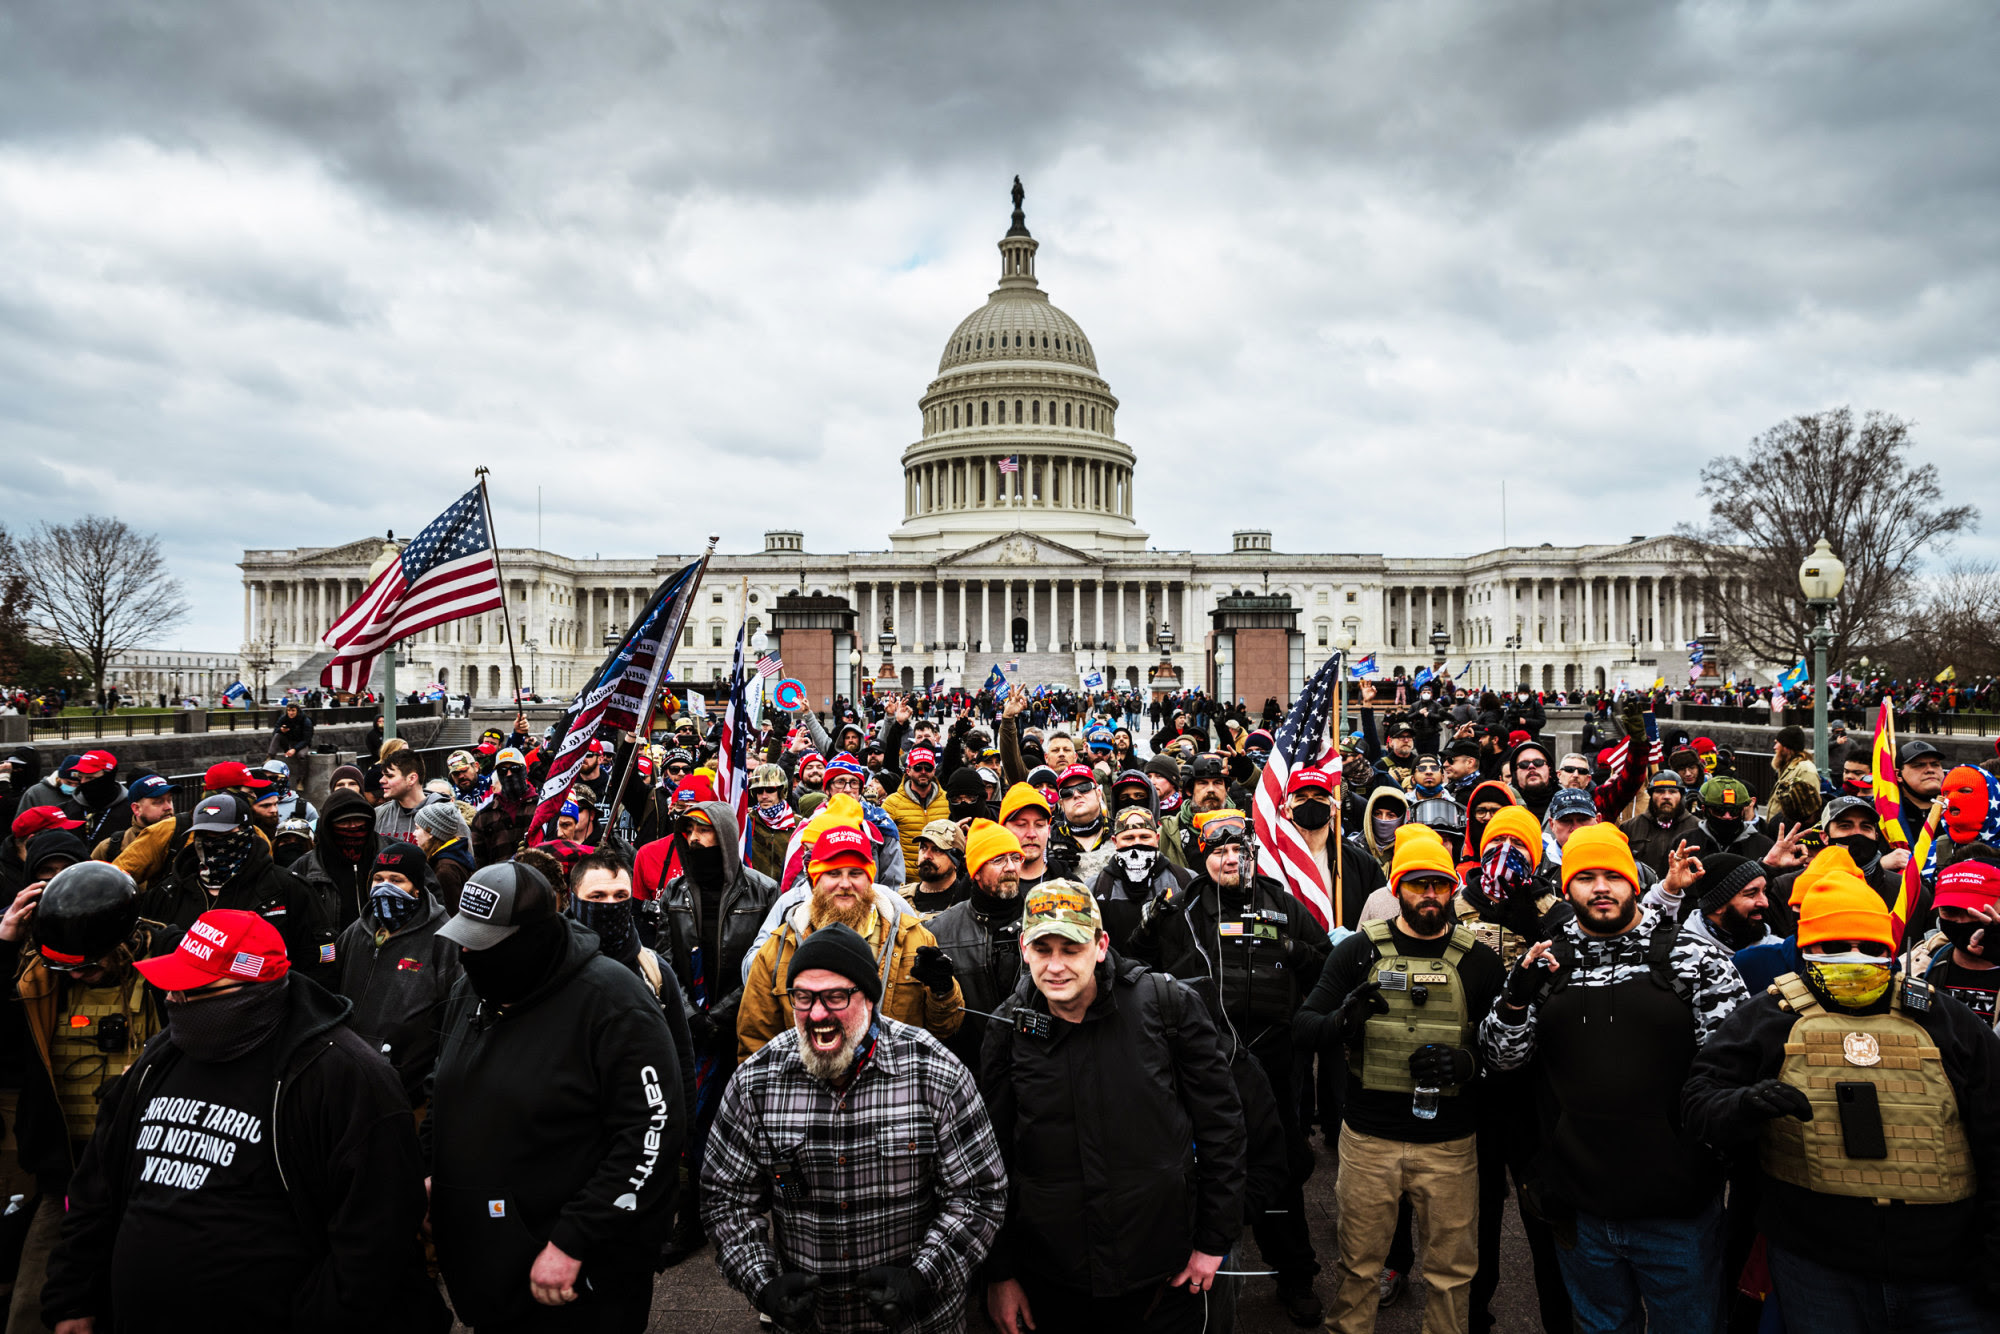 Trump supporters gather in front of the Capitol